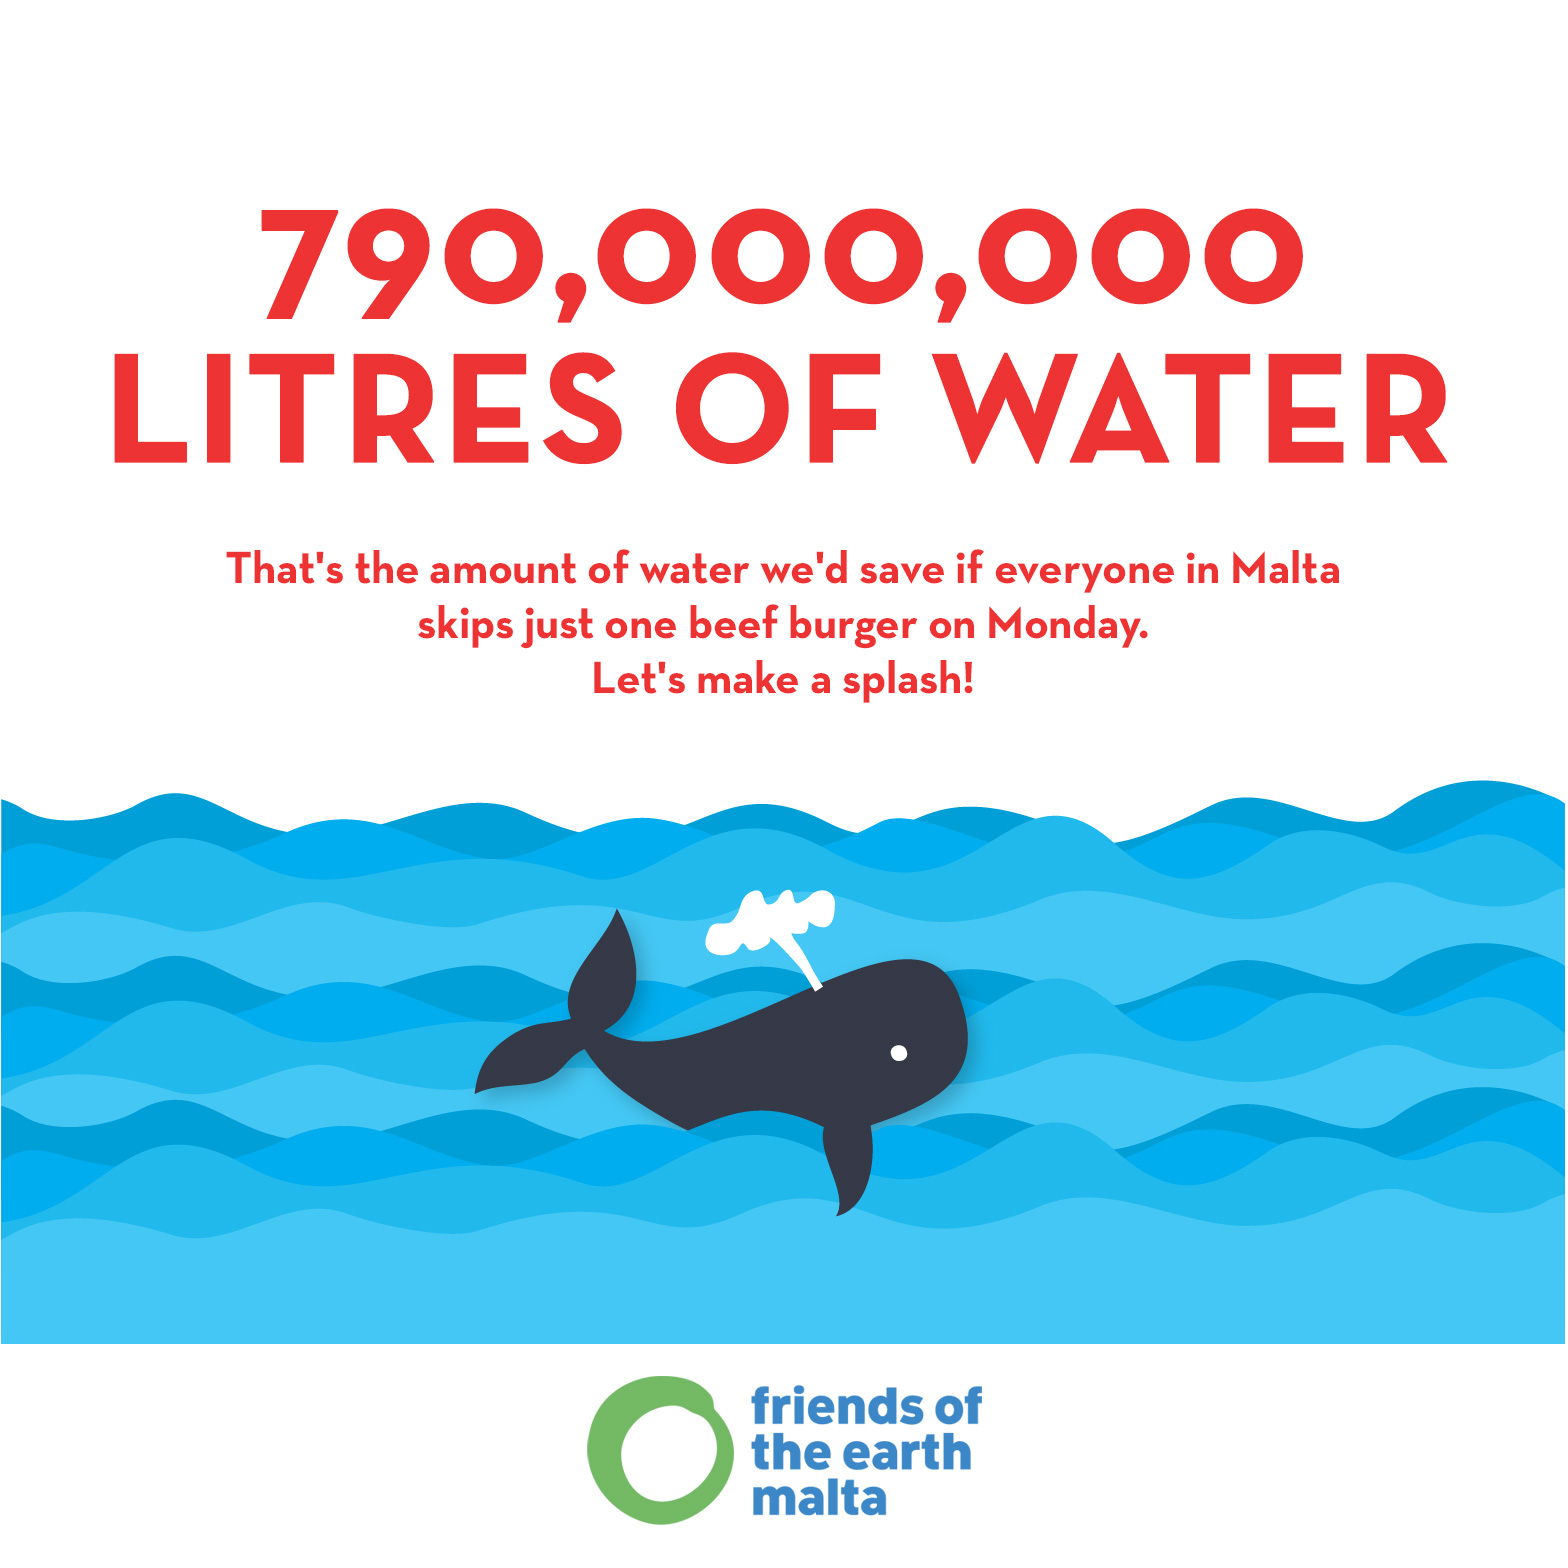 790 million litres of water